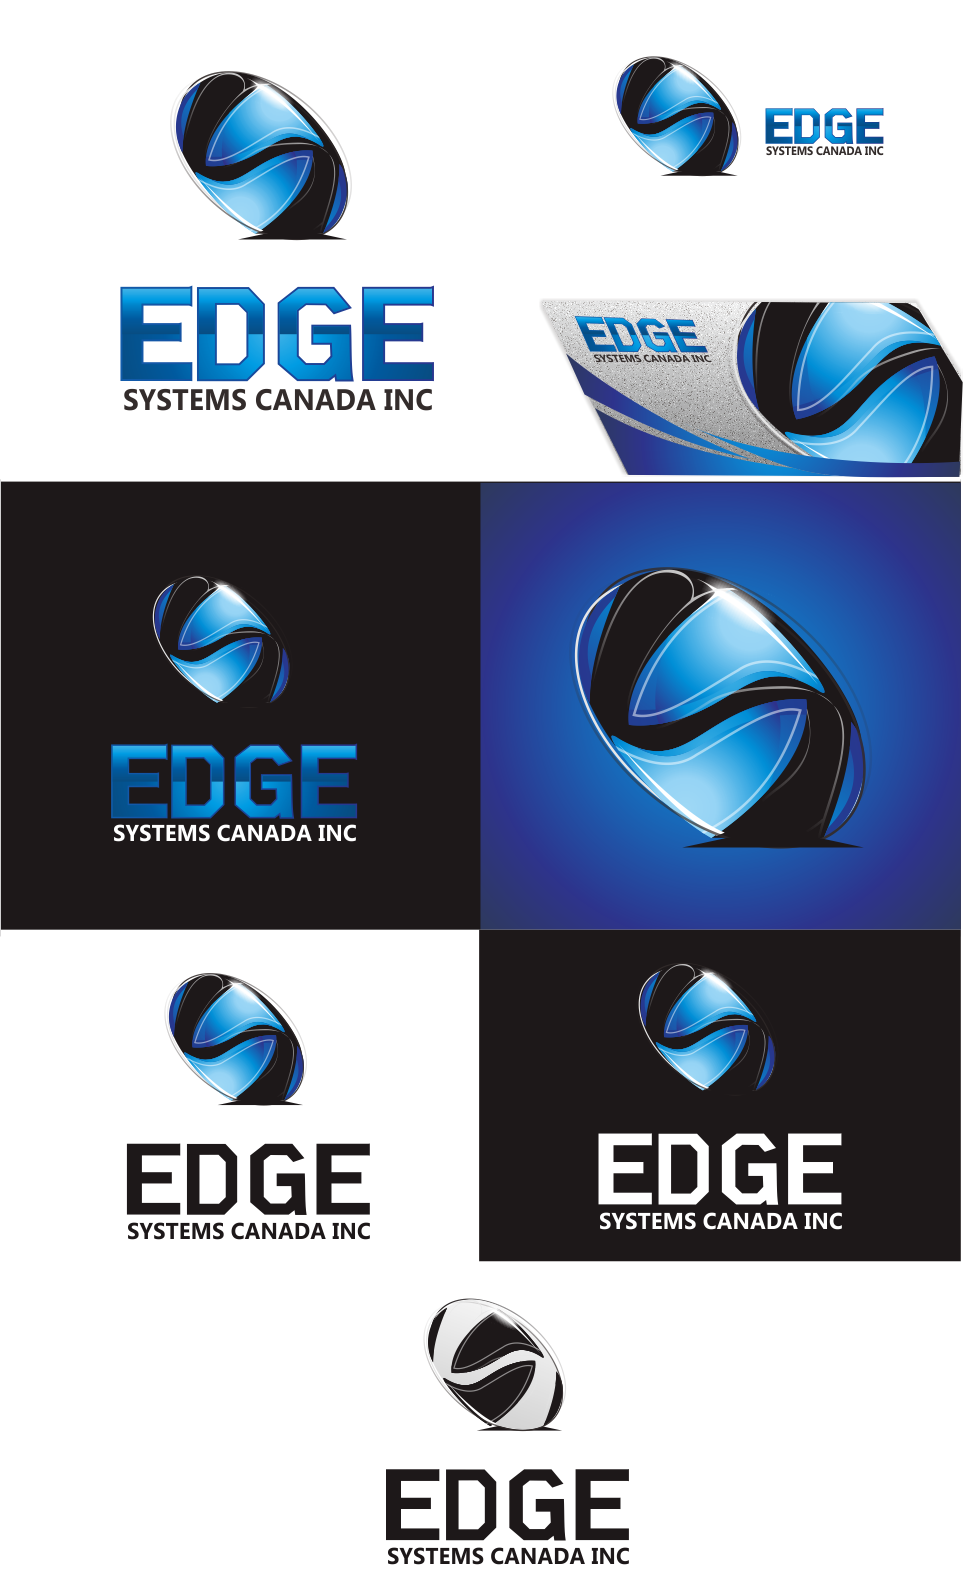 Logo Design by Mitchnick Sunardi - Entry No. 92 in the Logo Design Contest New Logo Design for Edge Systems Canada Inc.